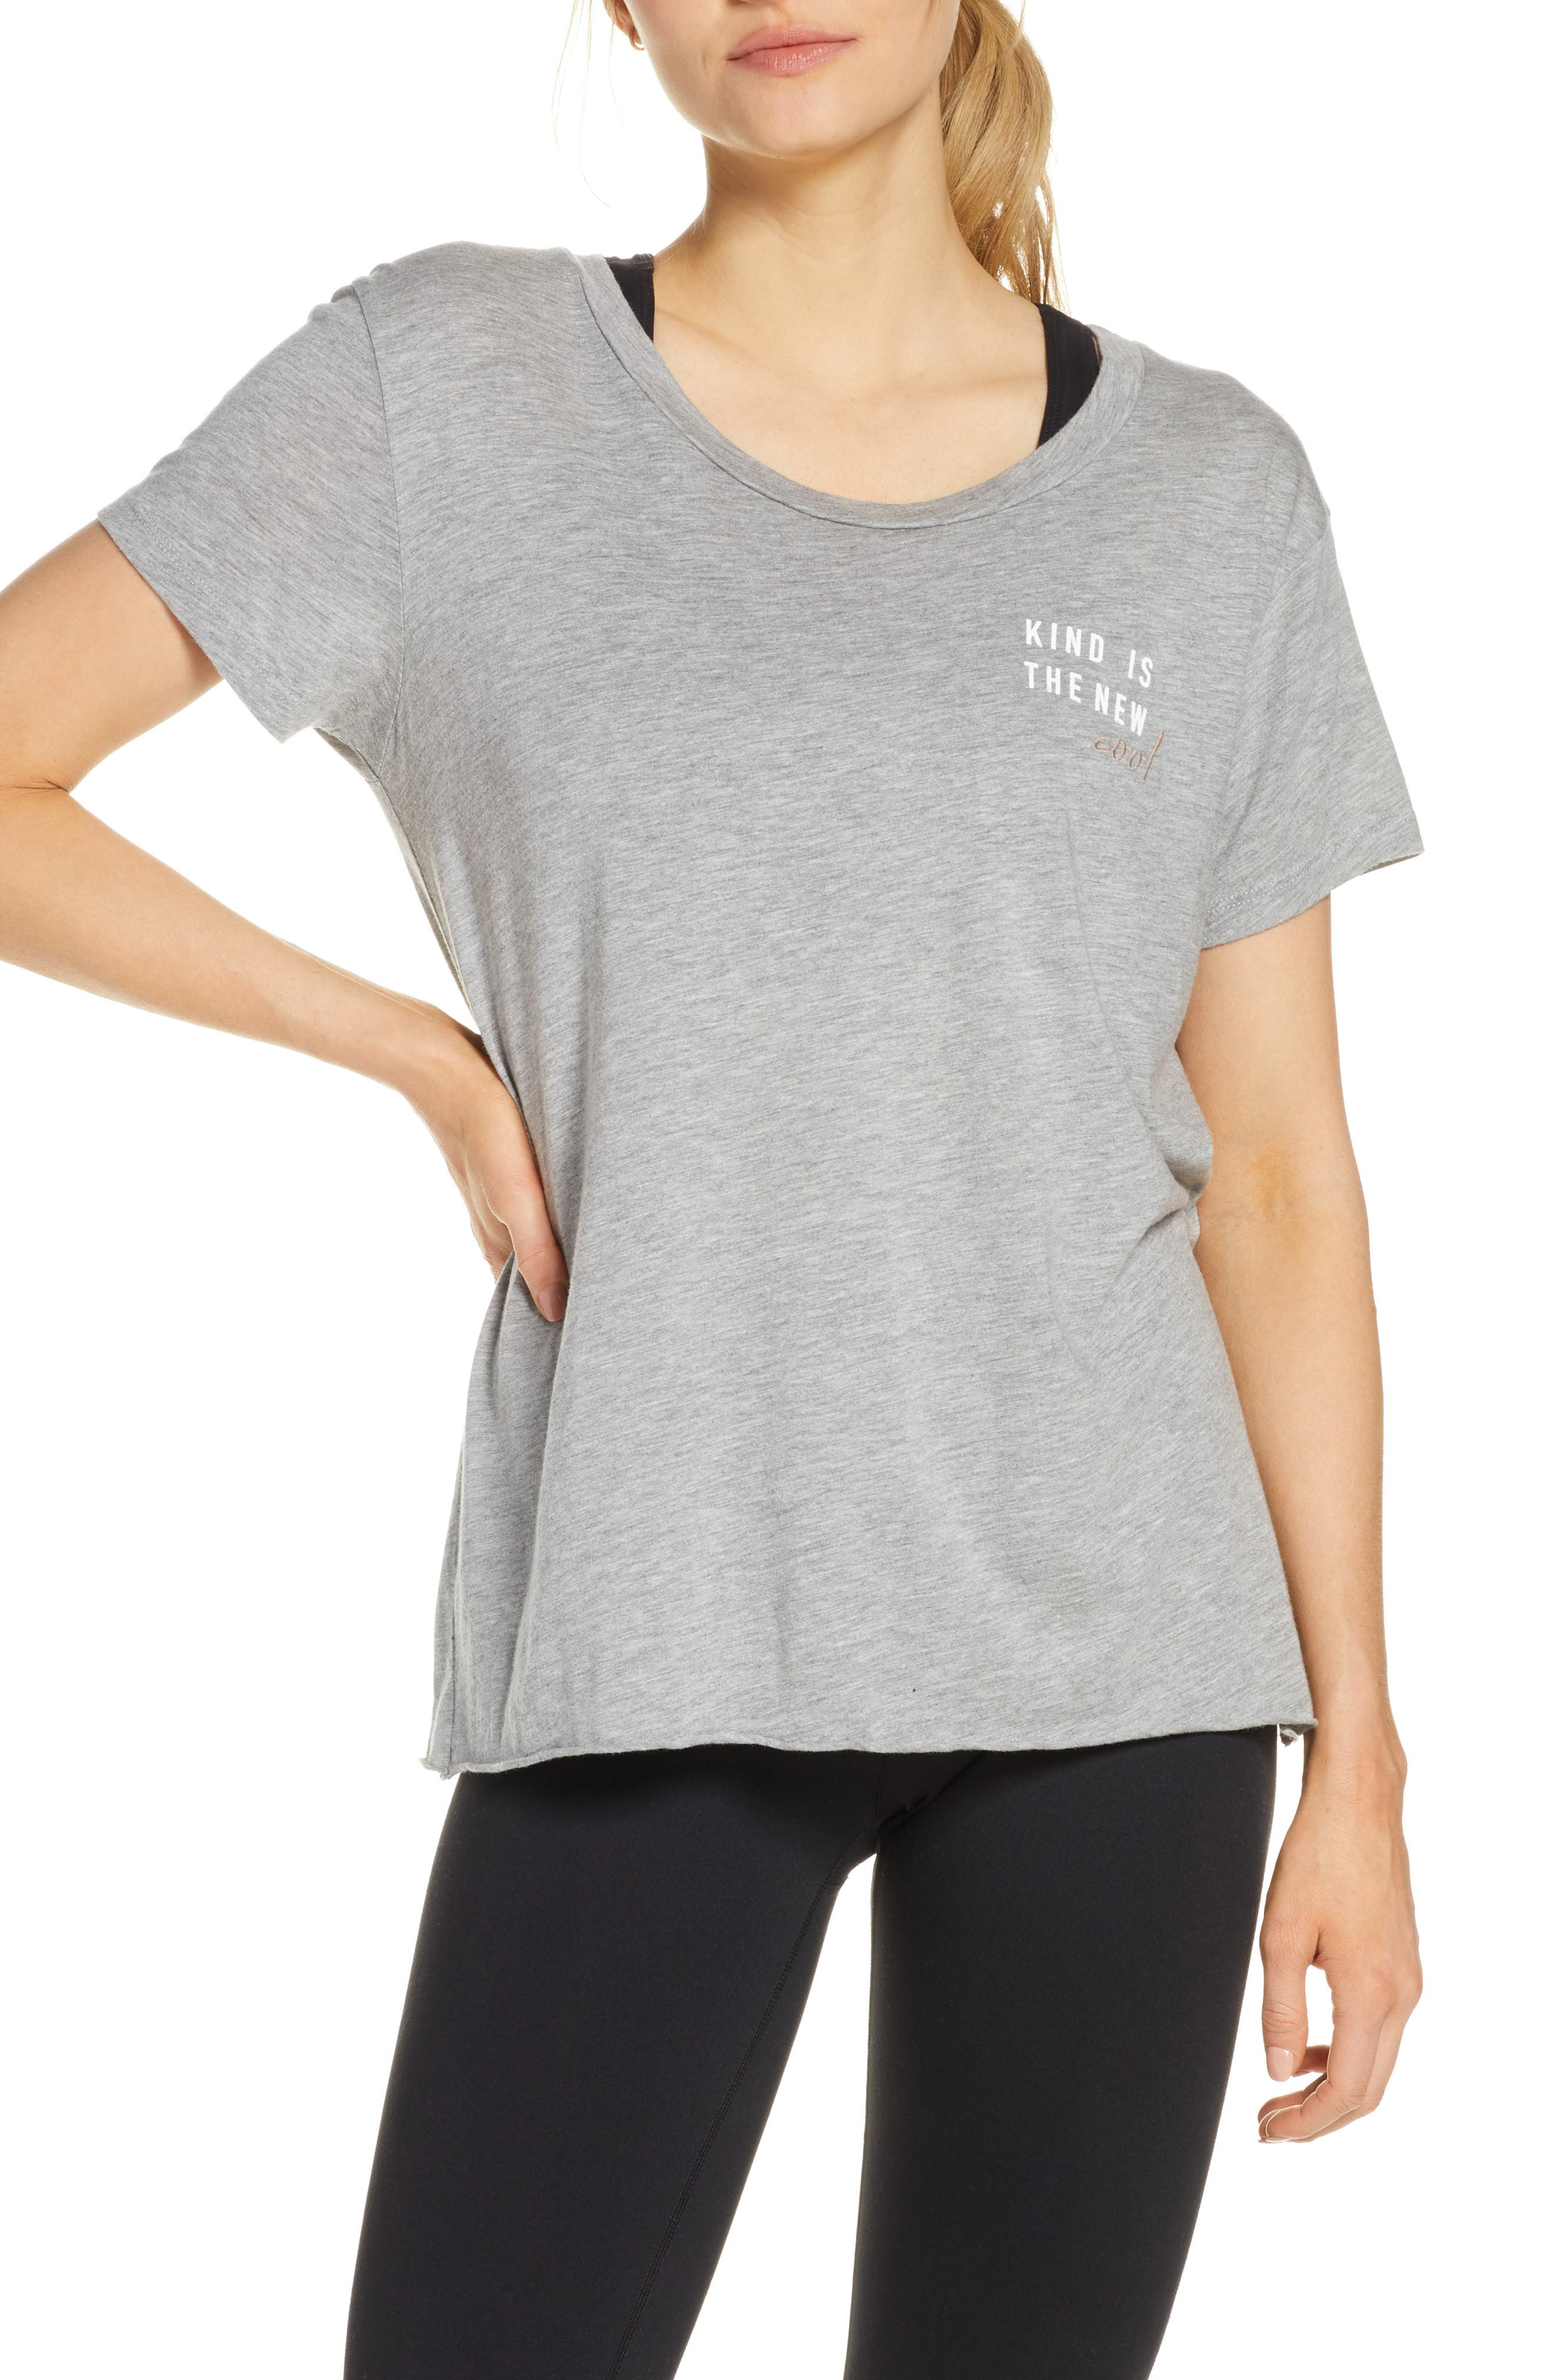 Good Hyouman Dakota Kind Is The New Cool Tee, Grey